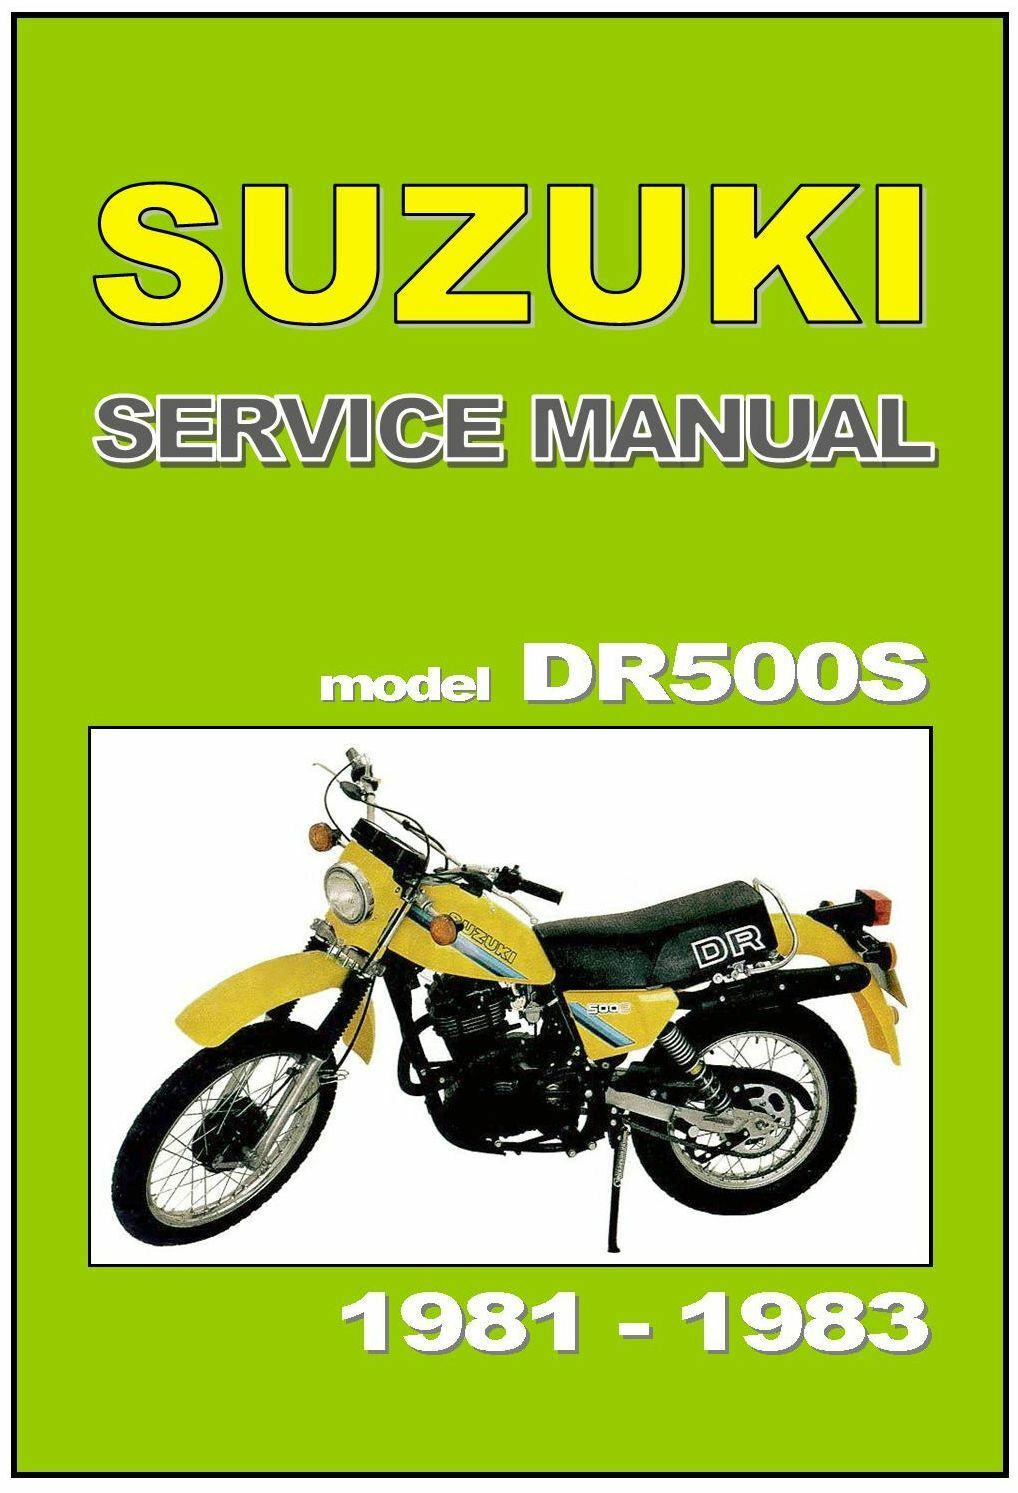 SUZUKI Workshop Manual DR500S 1981 1982 & 1983 Maintenance Service Repair  DR500 1 of 5Only 2 available ...